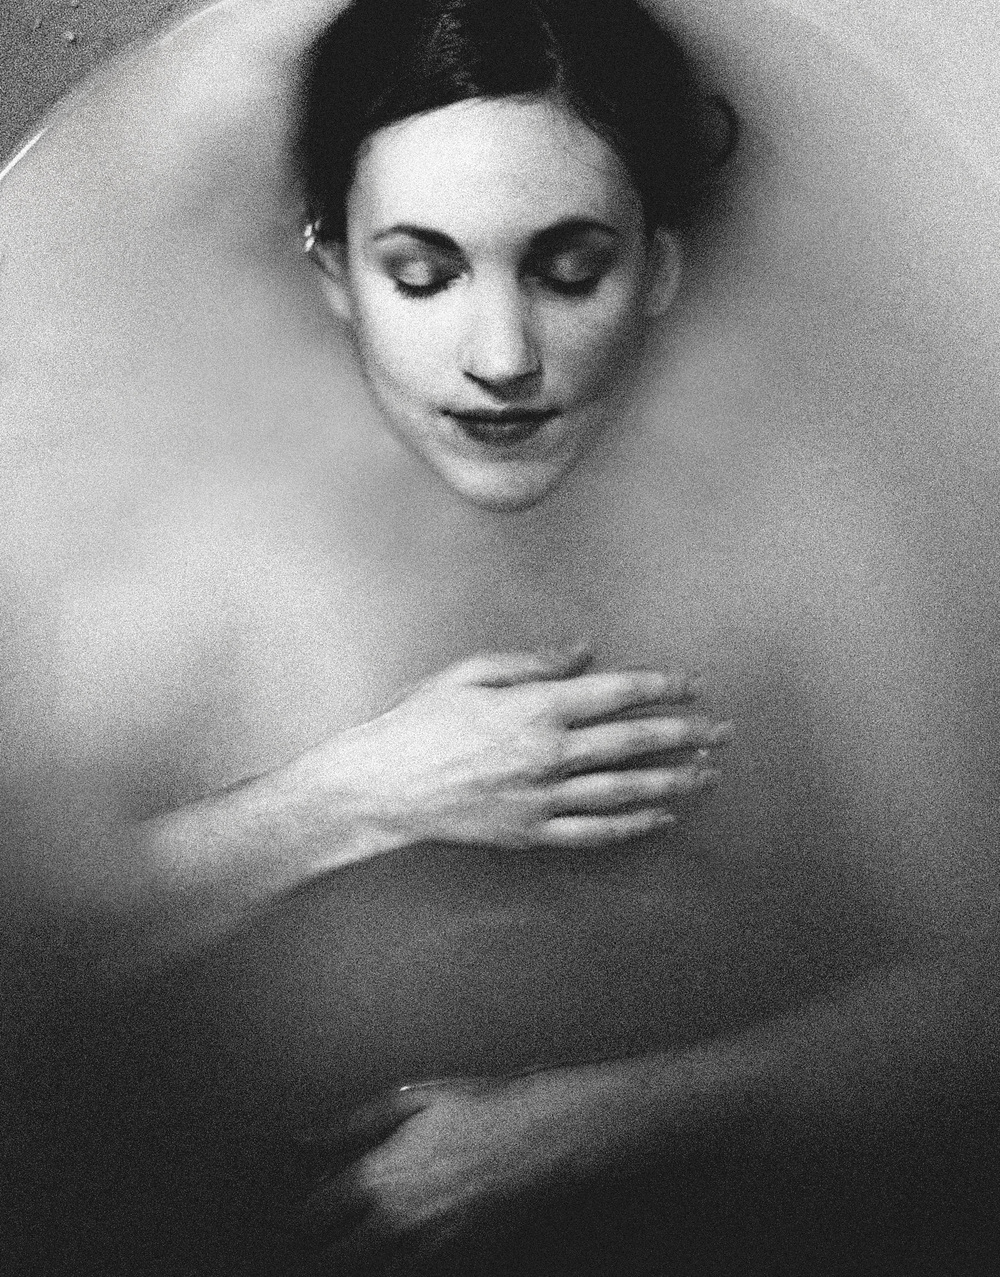 Jacques-Henri_Lartigue_recreation.jpg